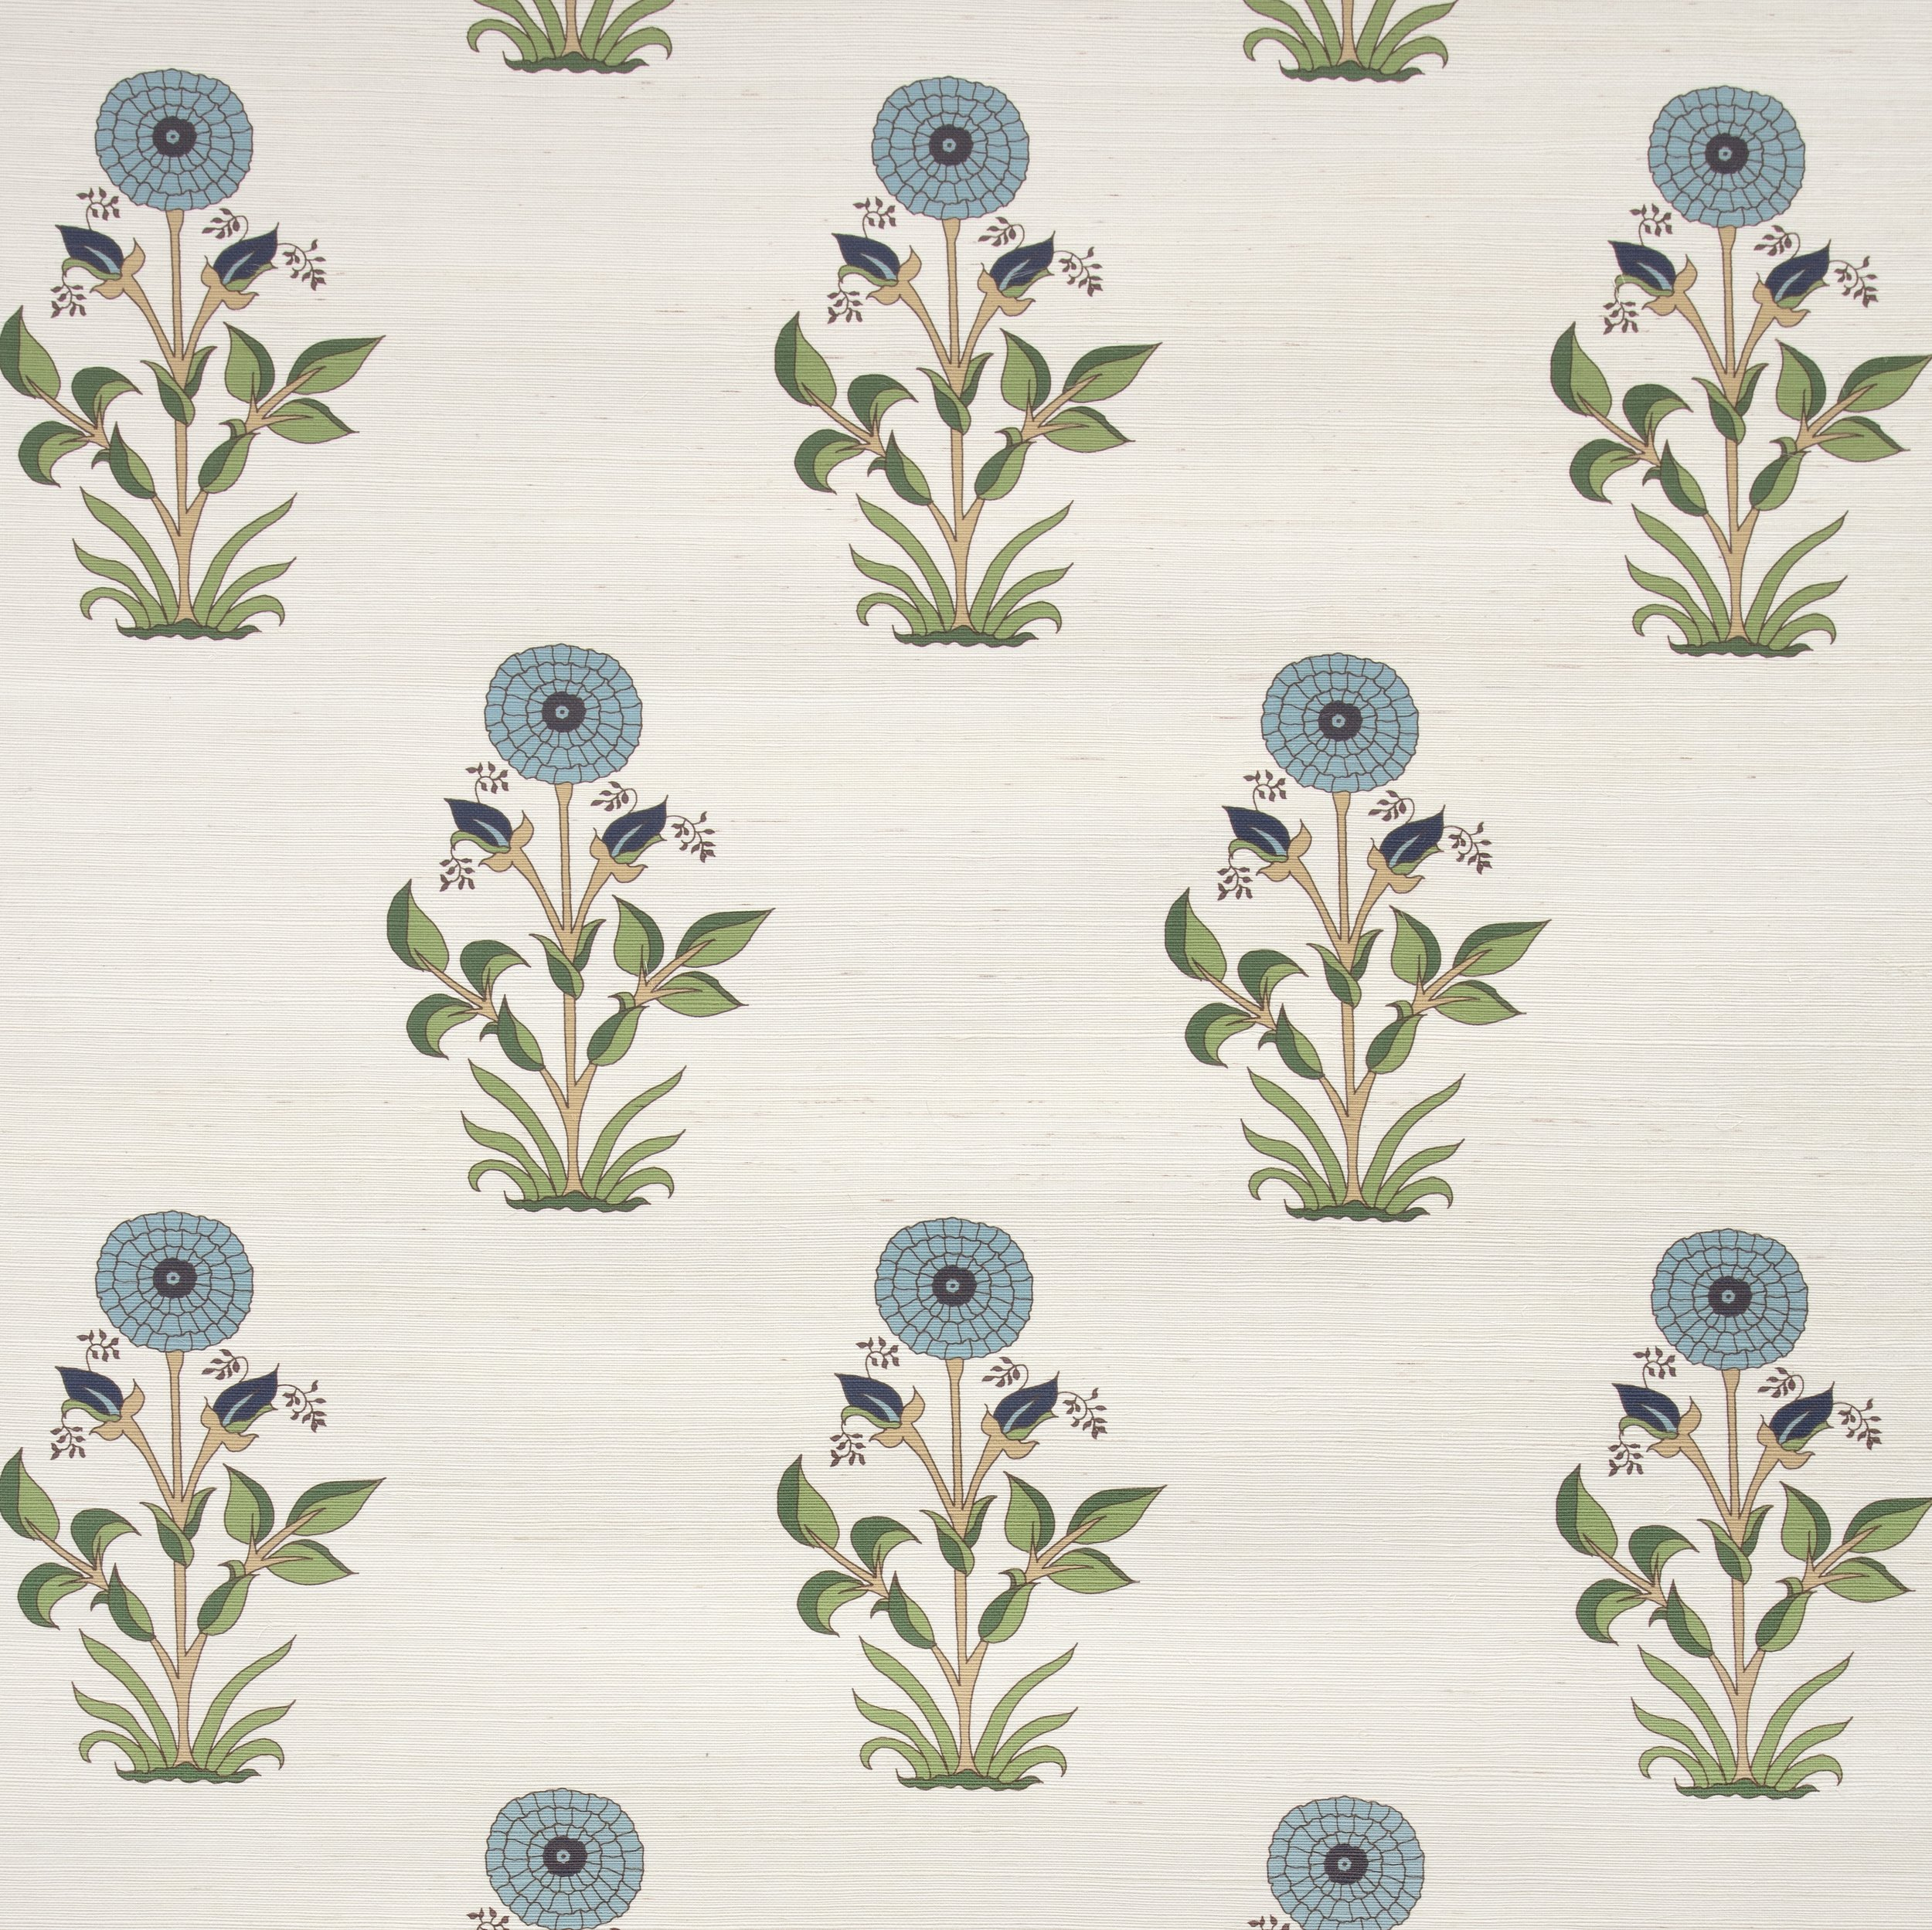 Large Marigold Grasscloth Wallpaper - Sky/Indigo